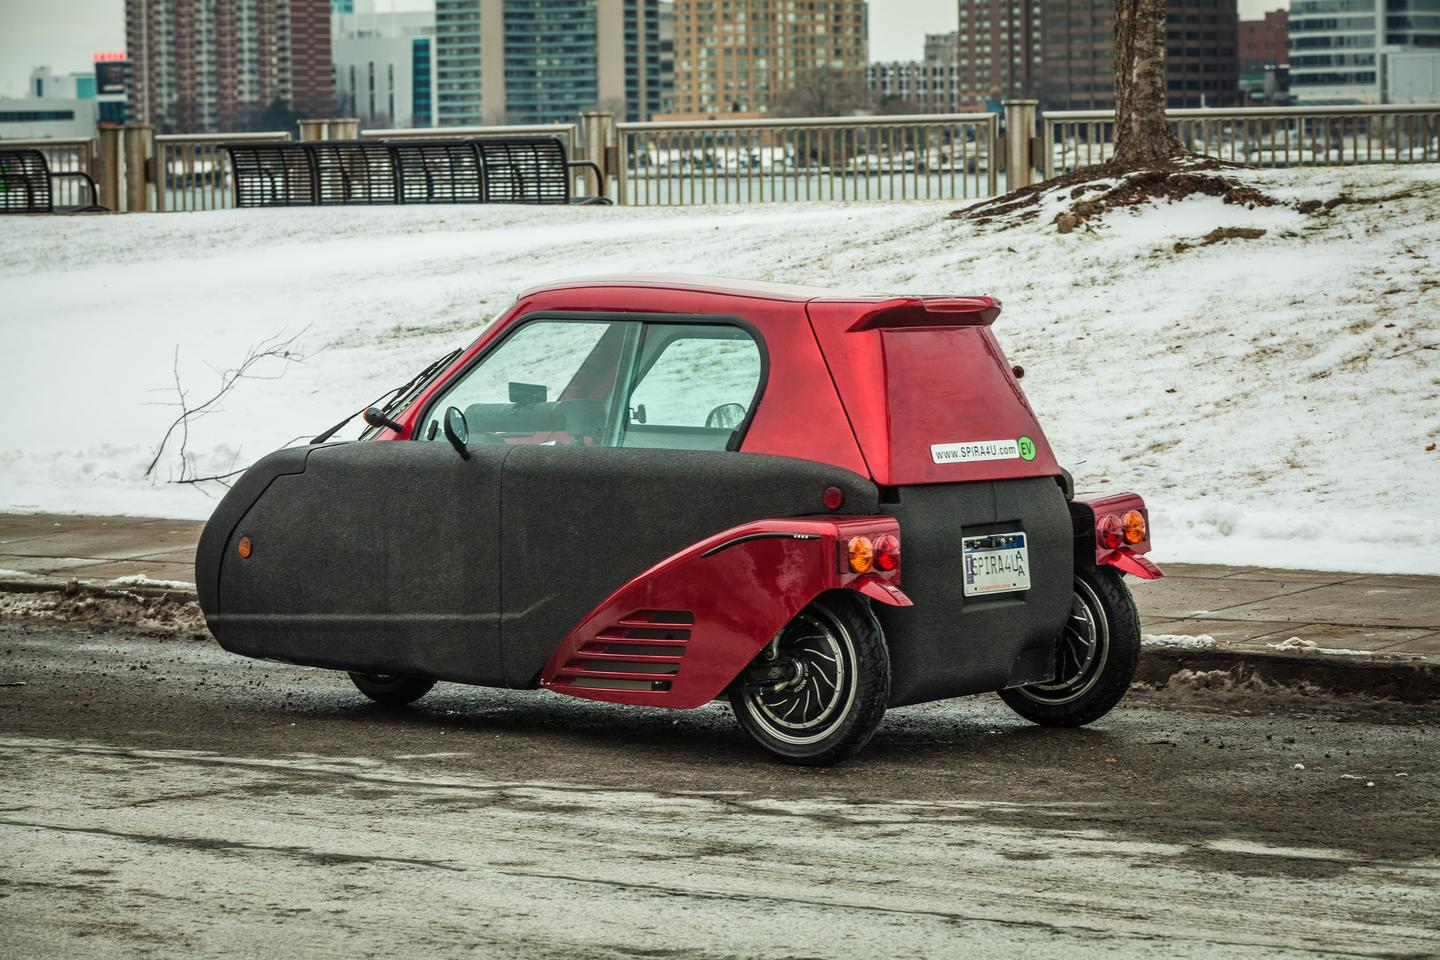 The Spira4U's top speed is limited to 60 mph (96.5 km/h) (Photo: Loz Blain/Gizmag.com)